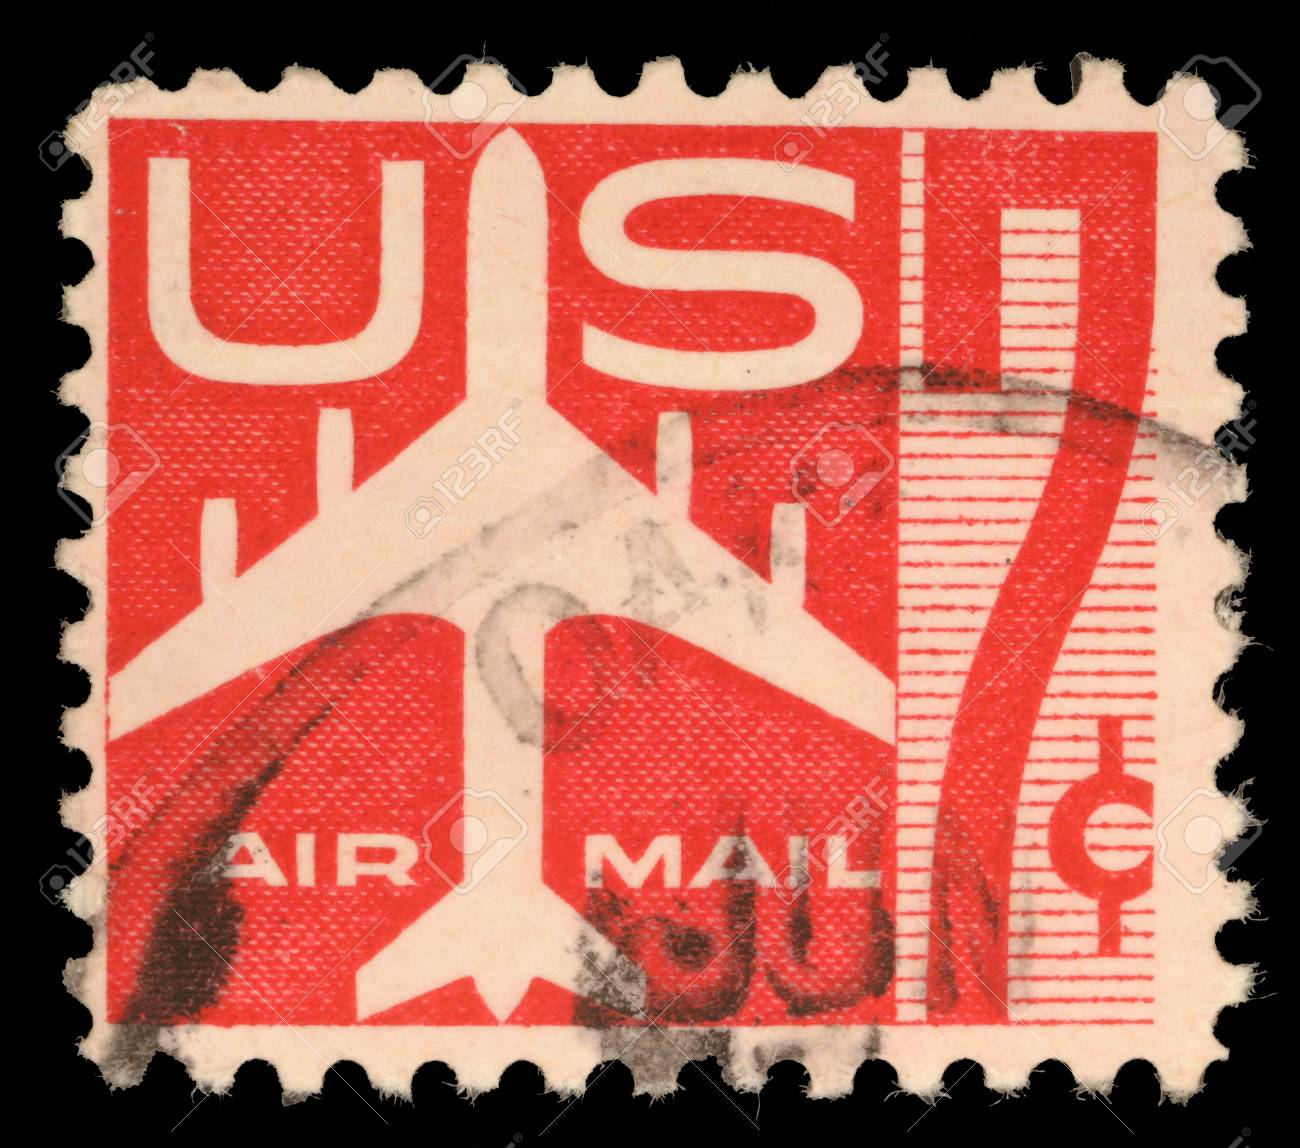 United States Postage Stamp In The Value Of 7c Used For Overseas